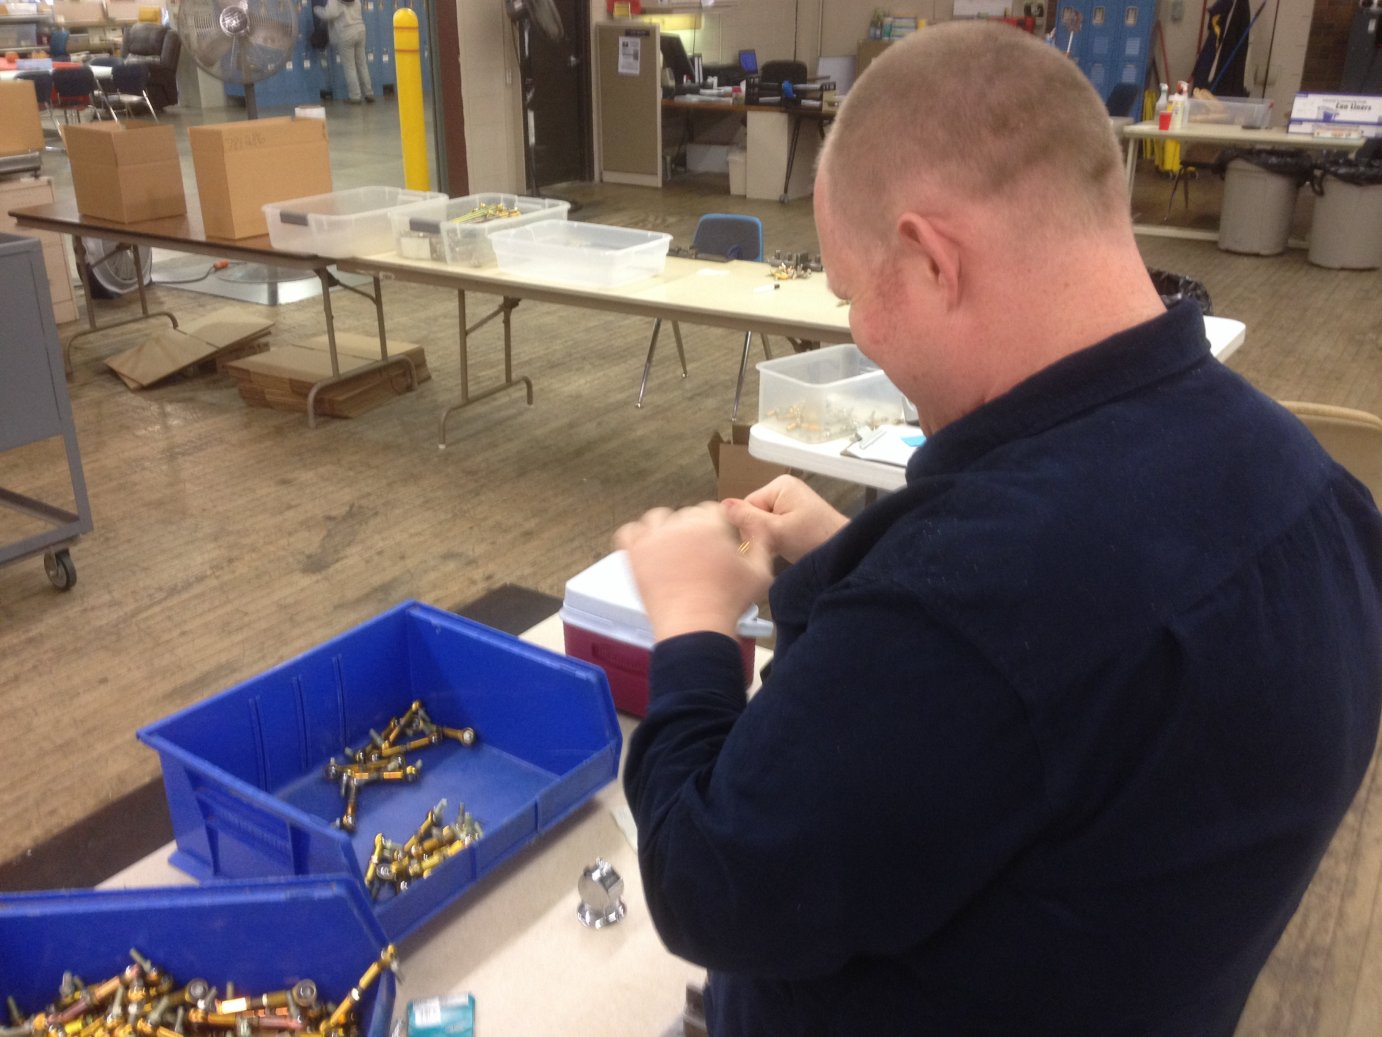 A client of the Occupational Center of Central Kansas assembles steering parts for riding lawnmowers in this sheltered workshop.  (Photo by Bryan Thompson)